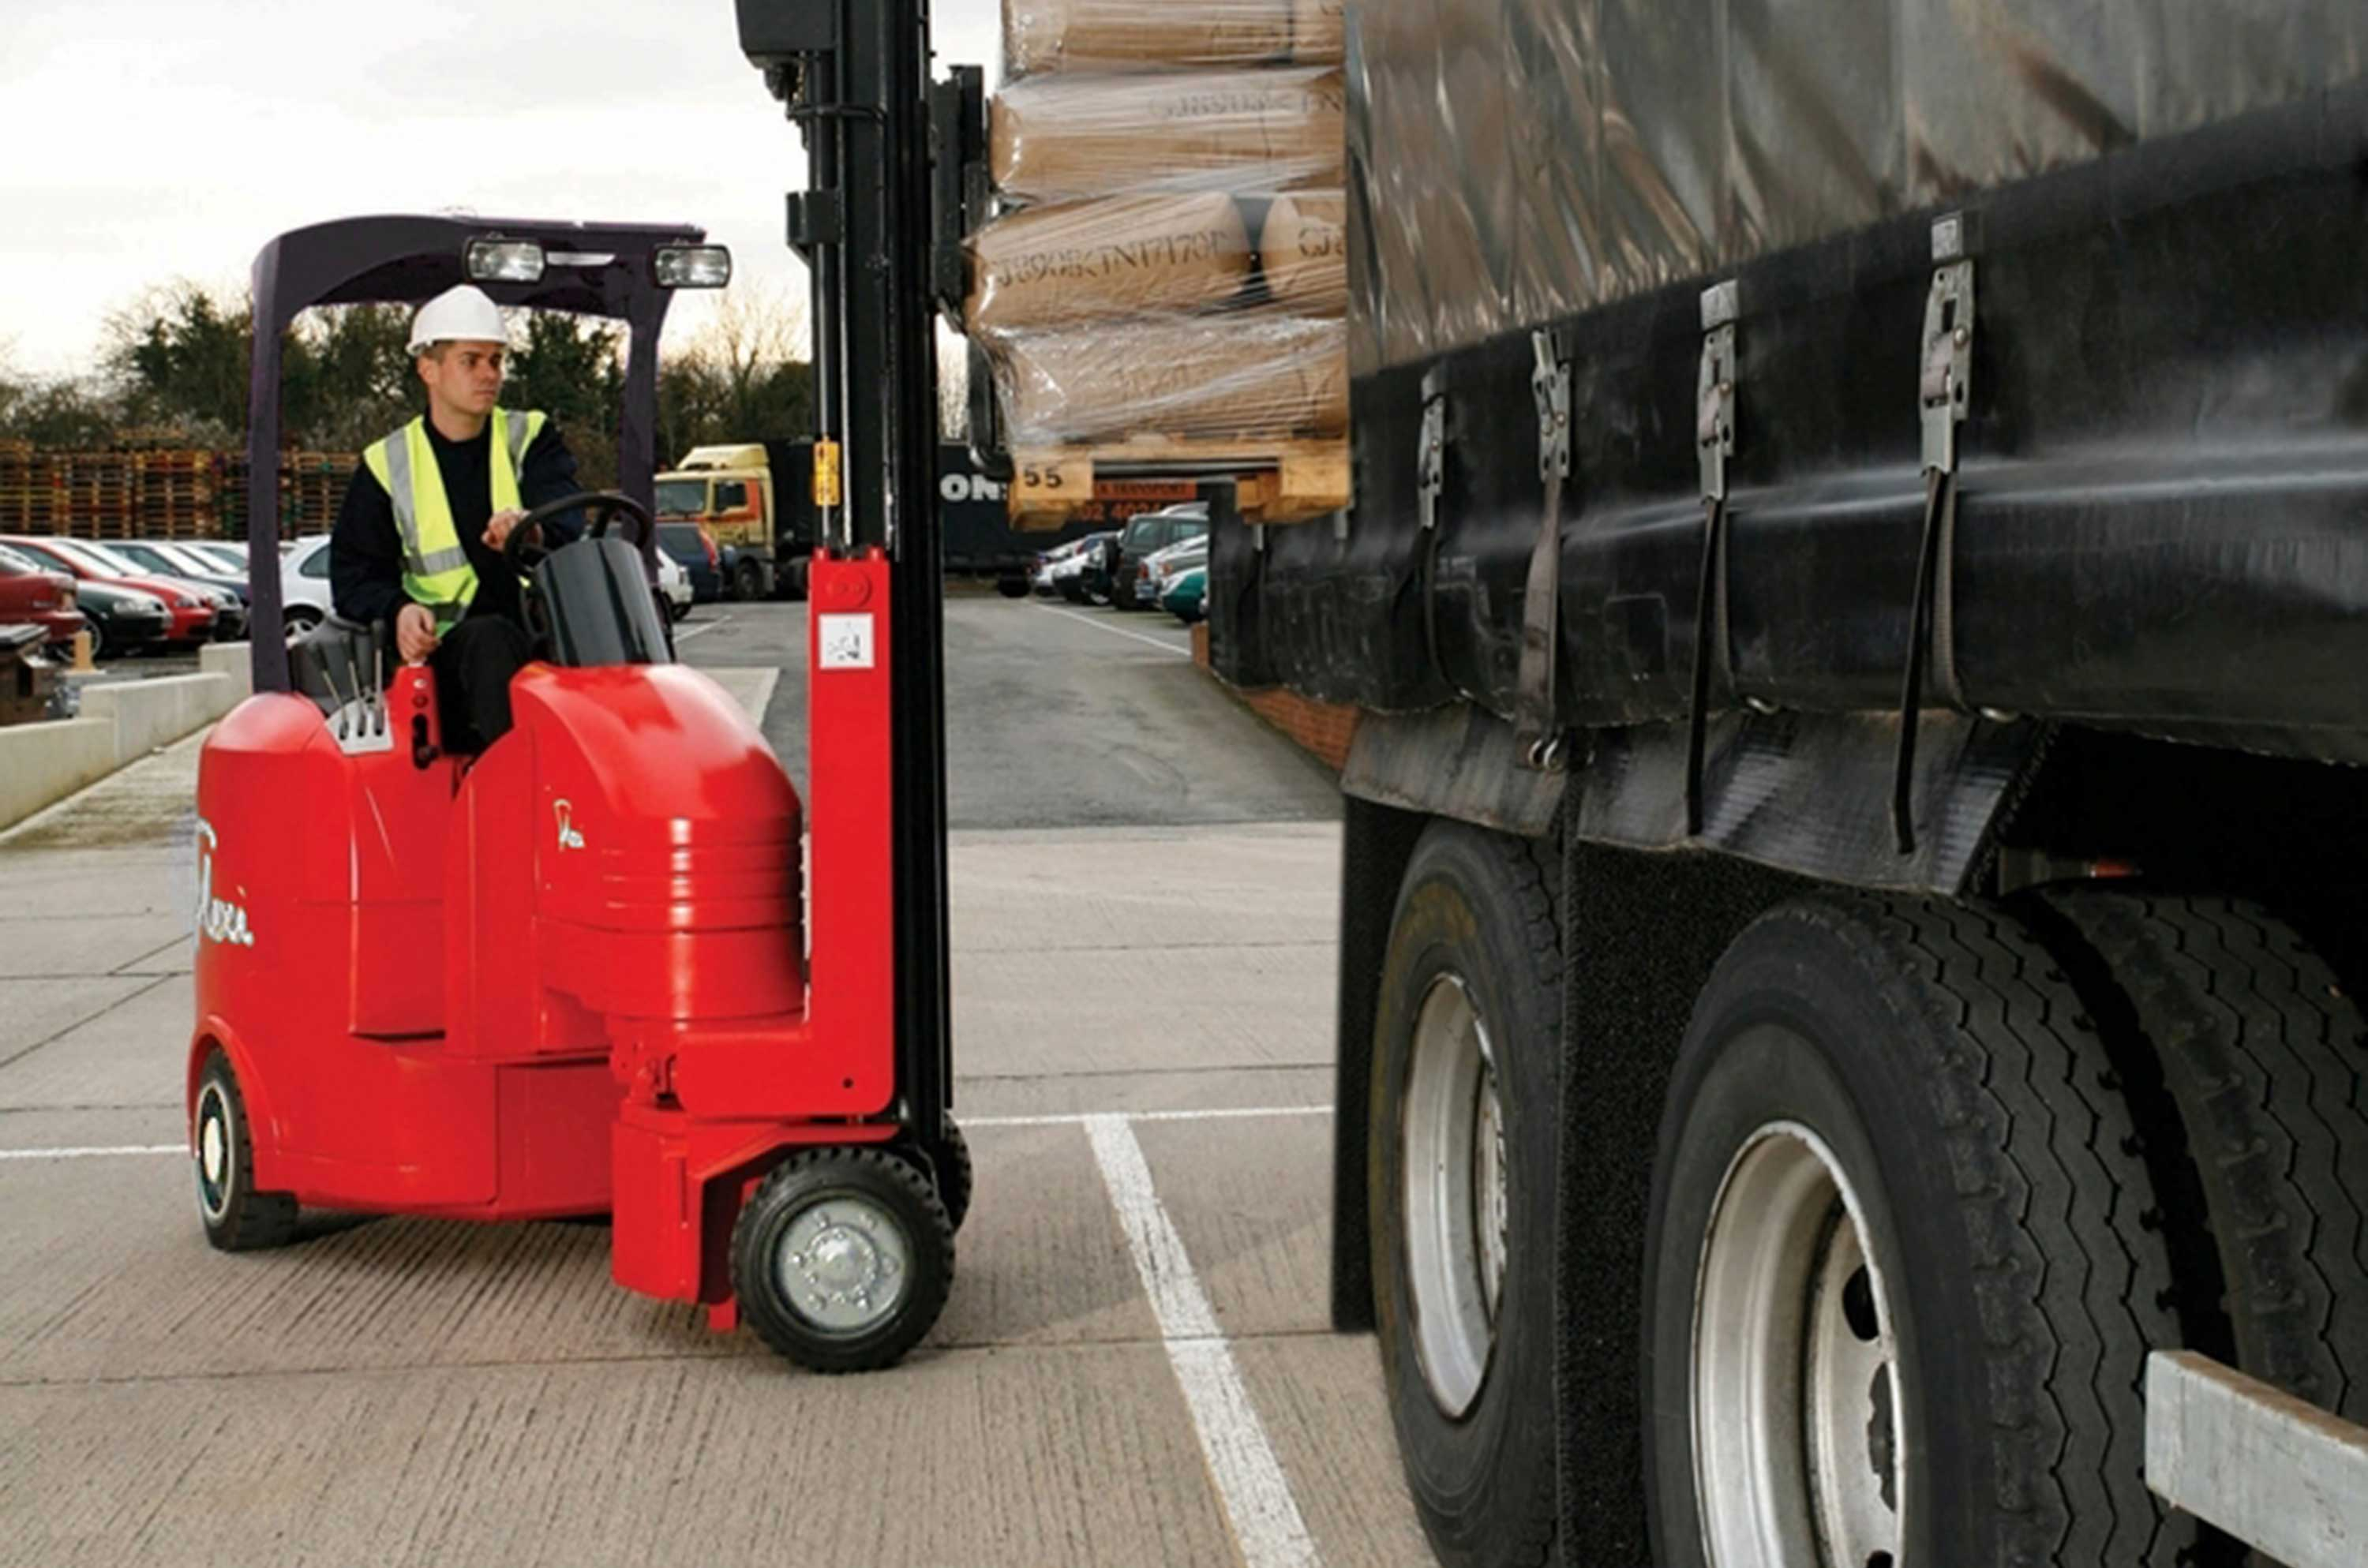 Red Flexi Fork Lift Truck loading a Lorry outside a Warehouse